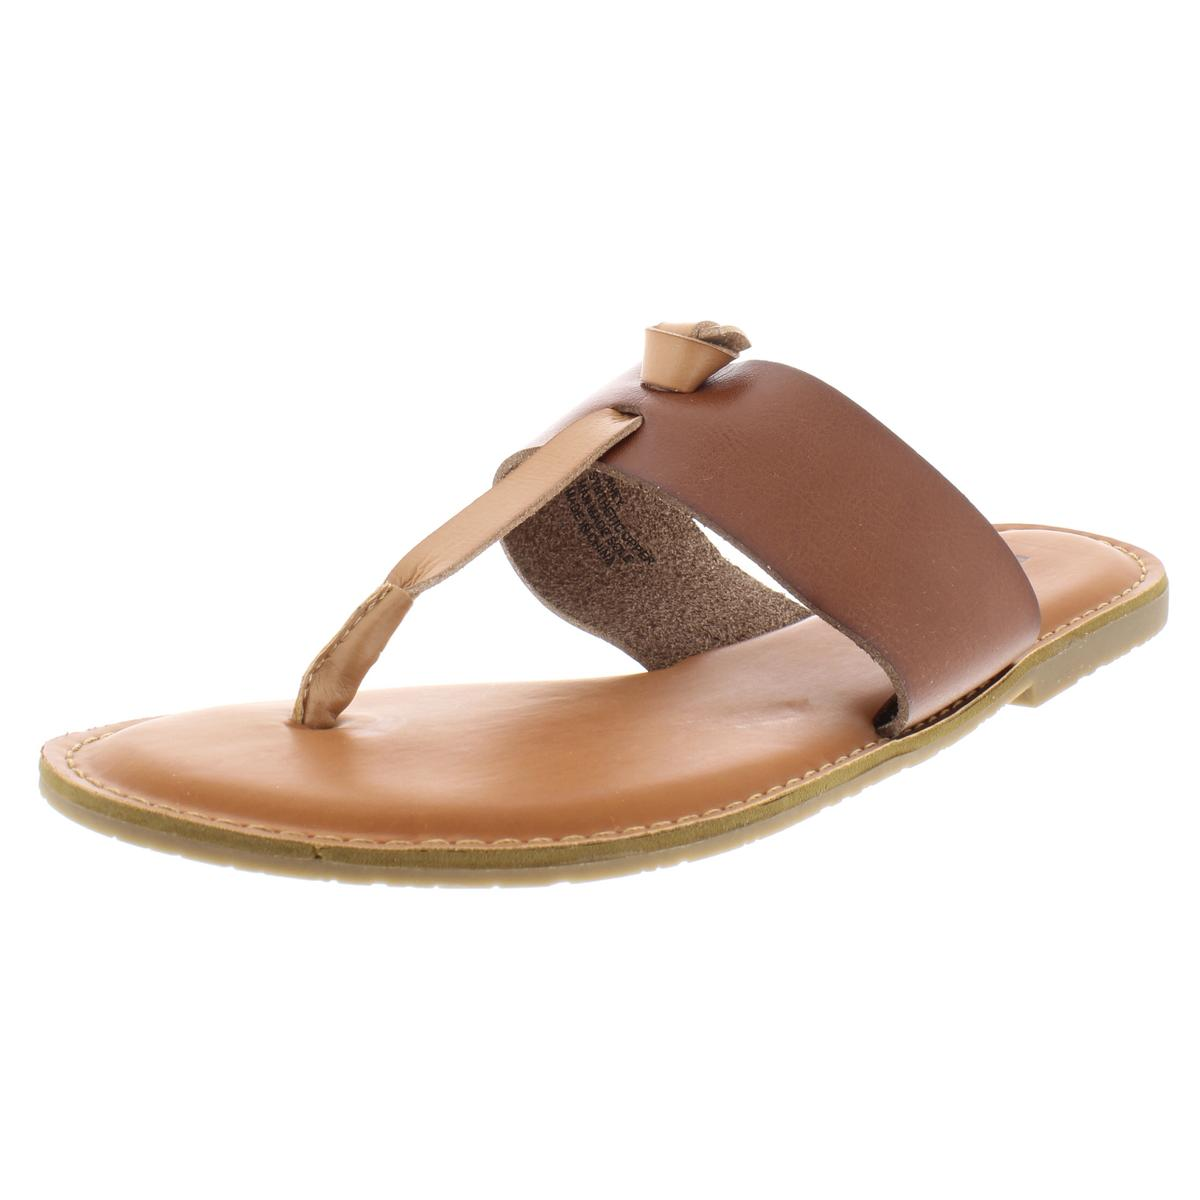 4cd325976cde Details about Rock and Candy by Zigi Womens Blaney Tan Thong Sandals 6  Medium (B